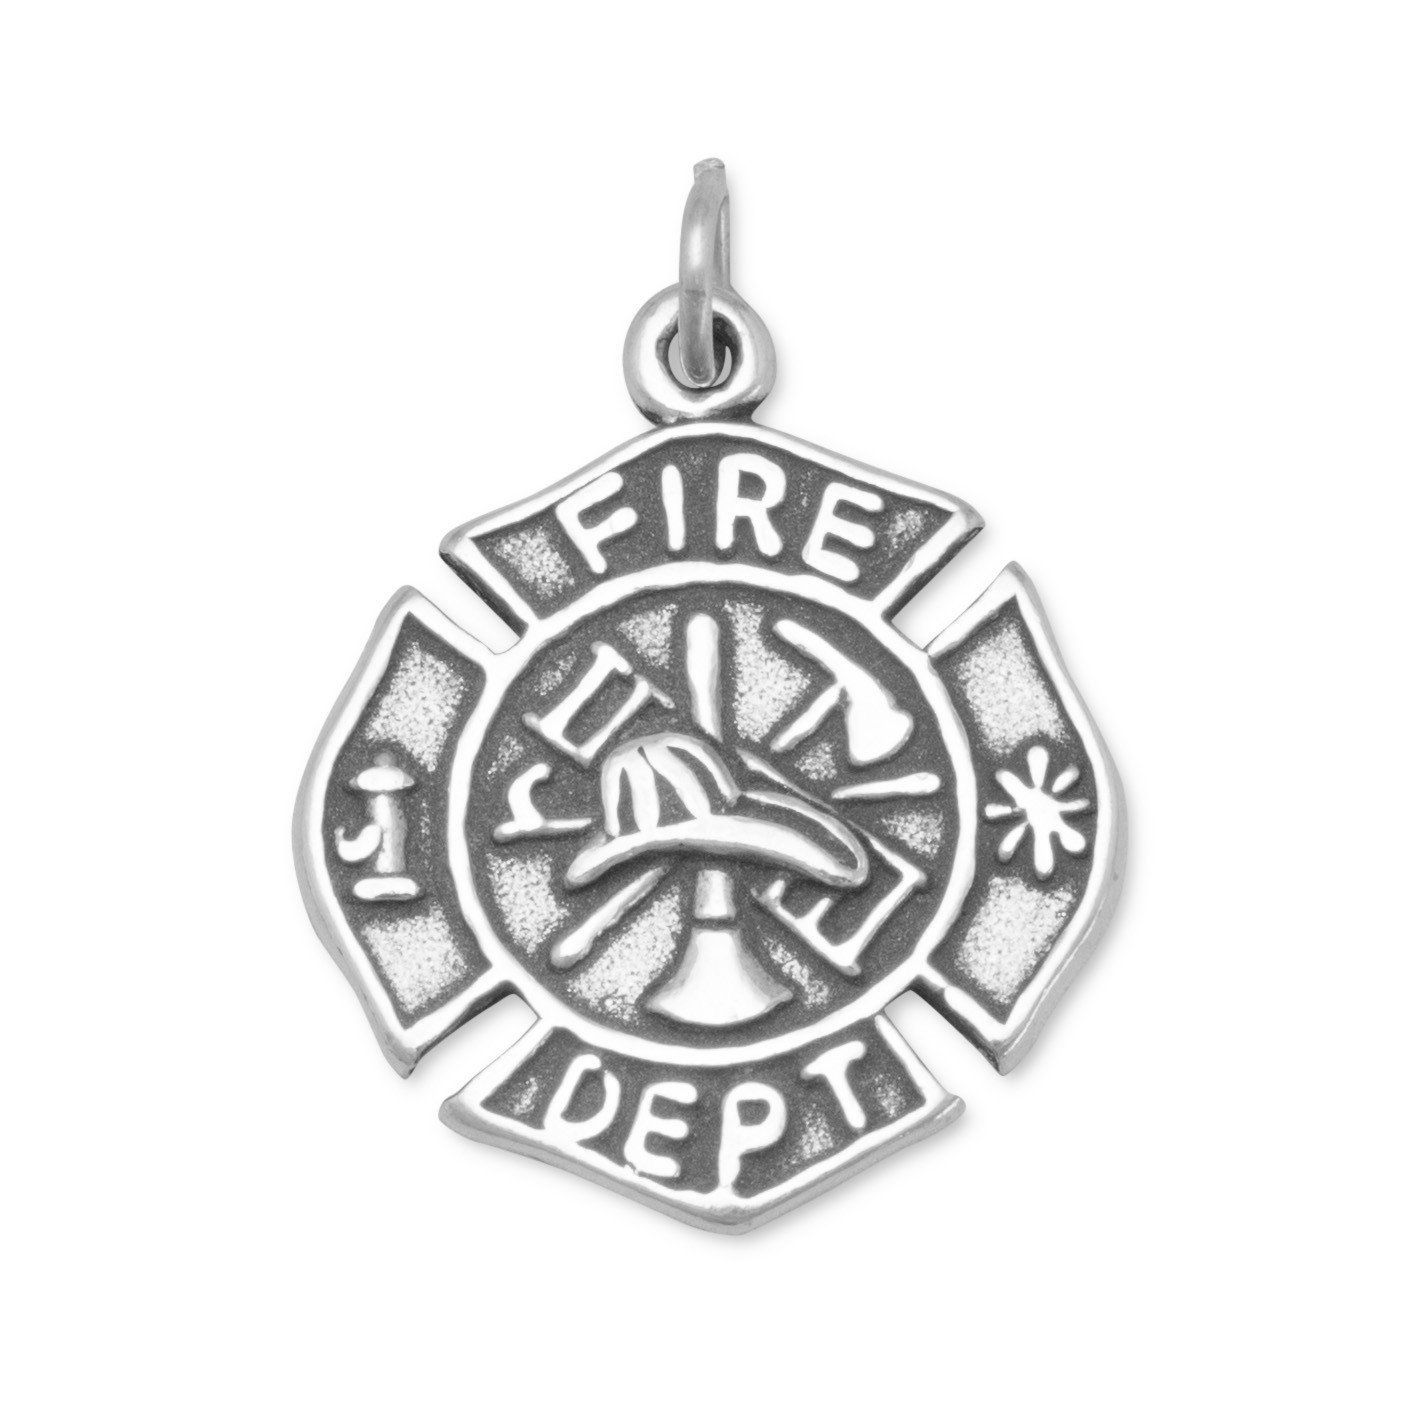 sterling firefighter daviddafferdesigns fire pendant david size tiny daffer cross maltese pin silver department necklace designs